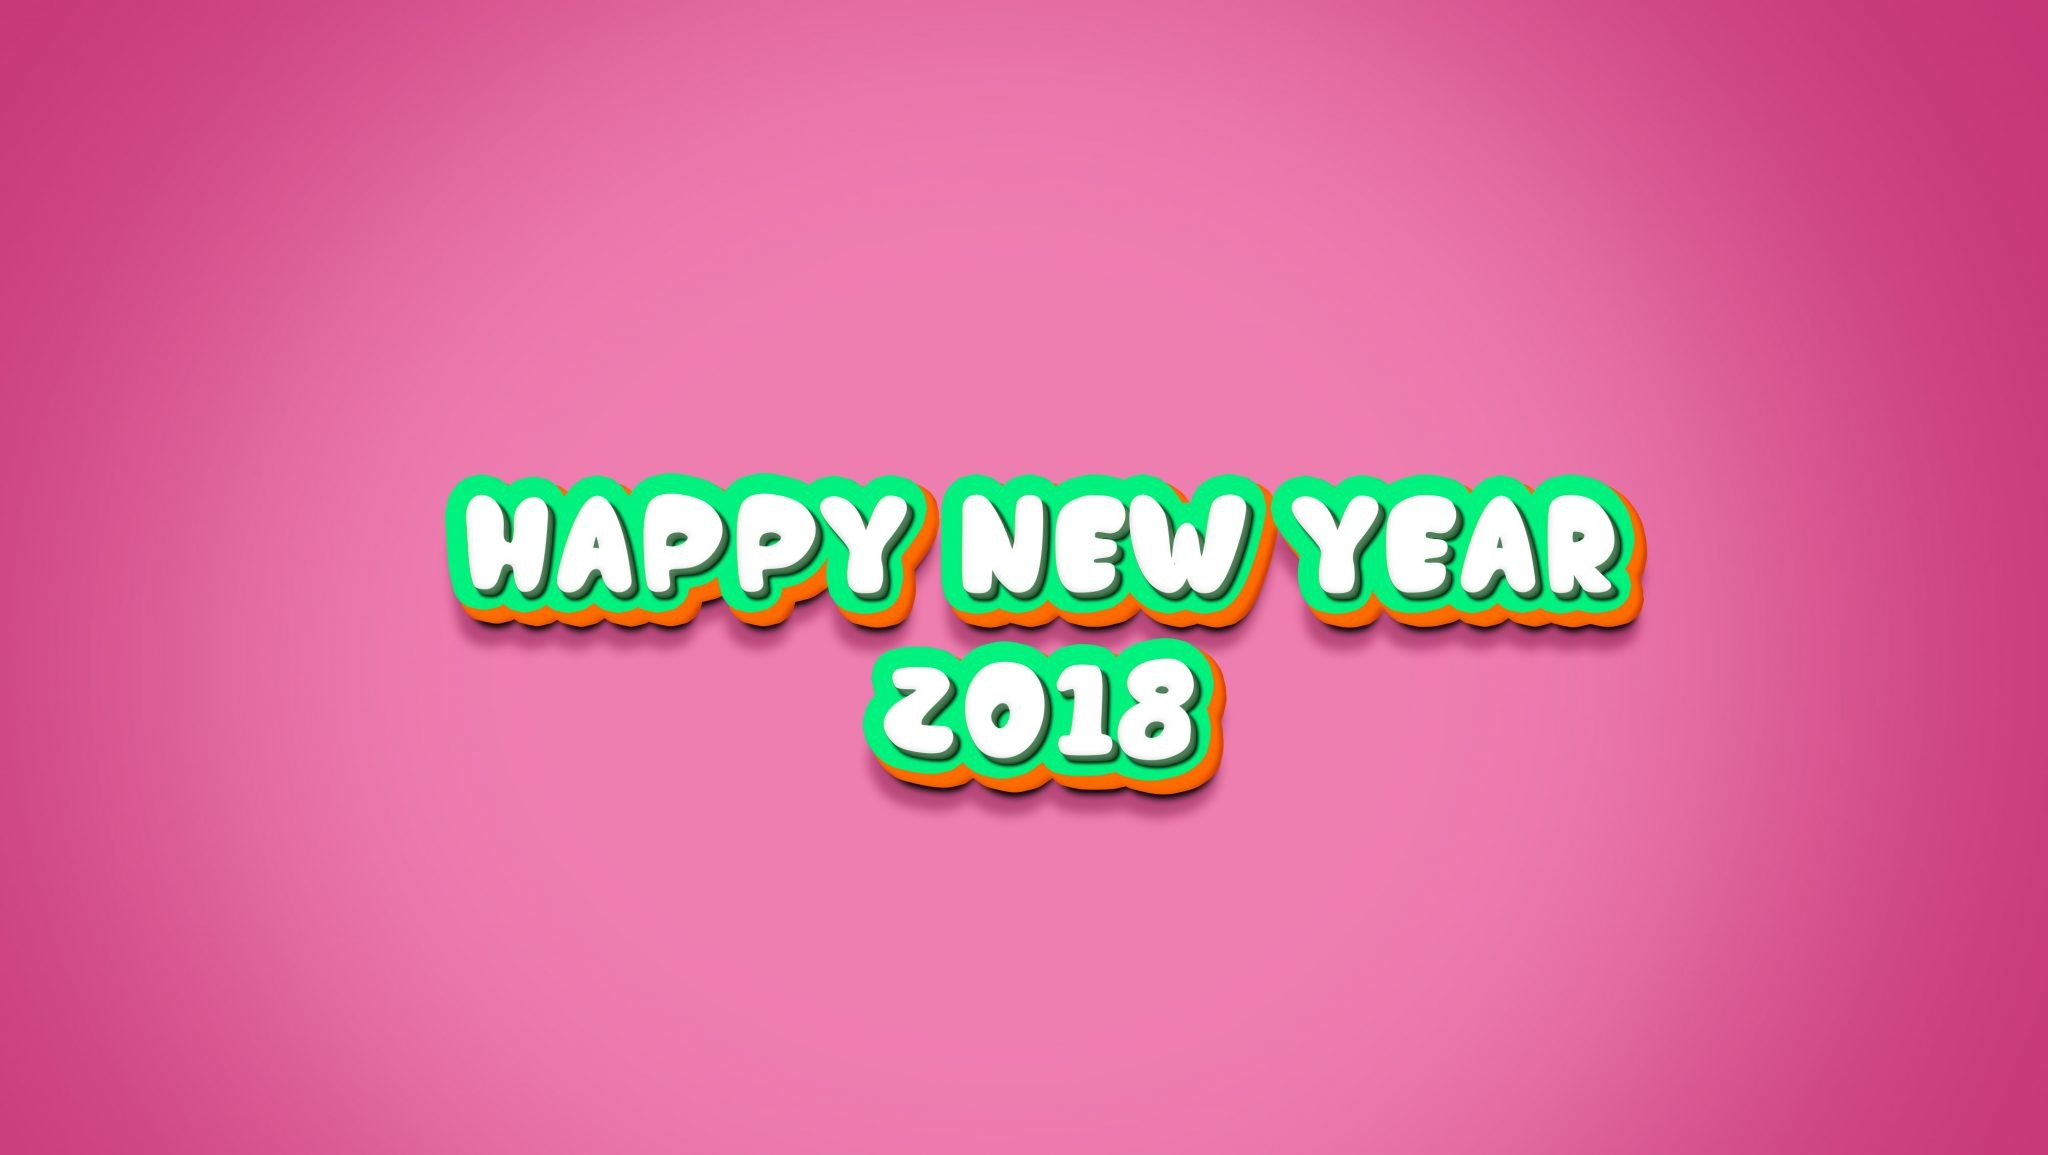 2048x1155 new year wallpaper hd backgrounds